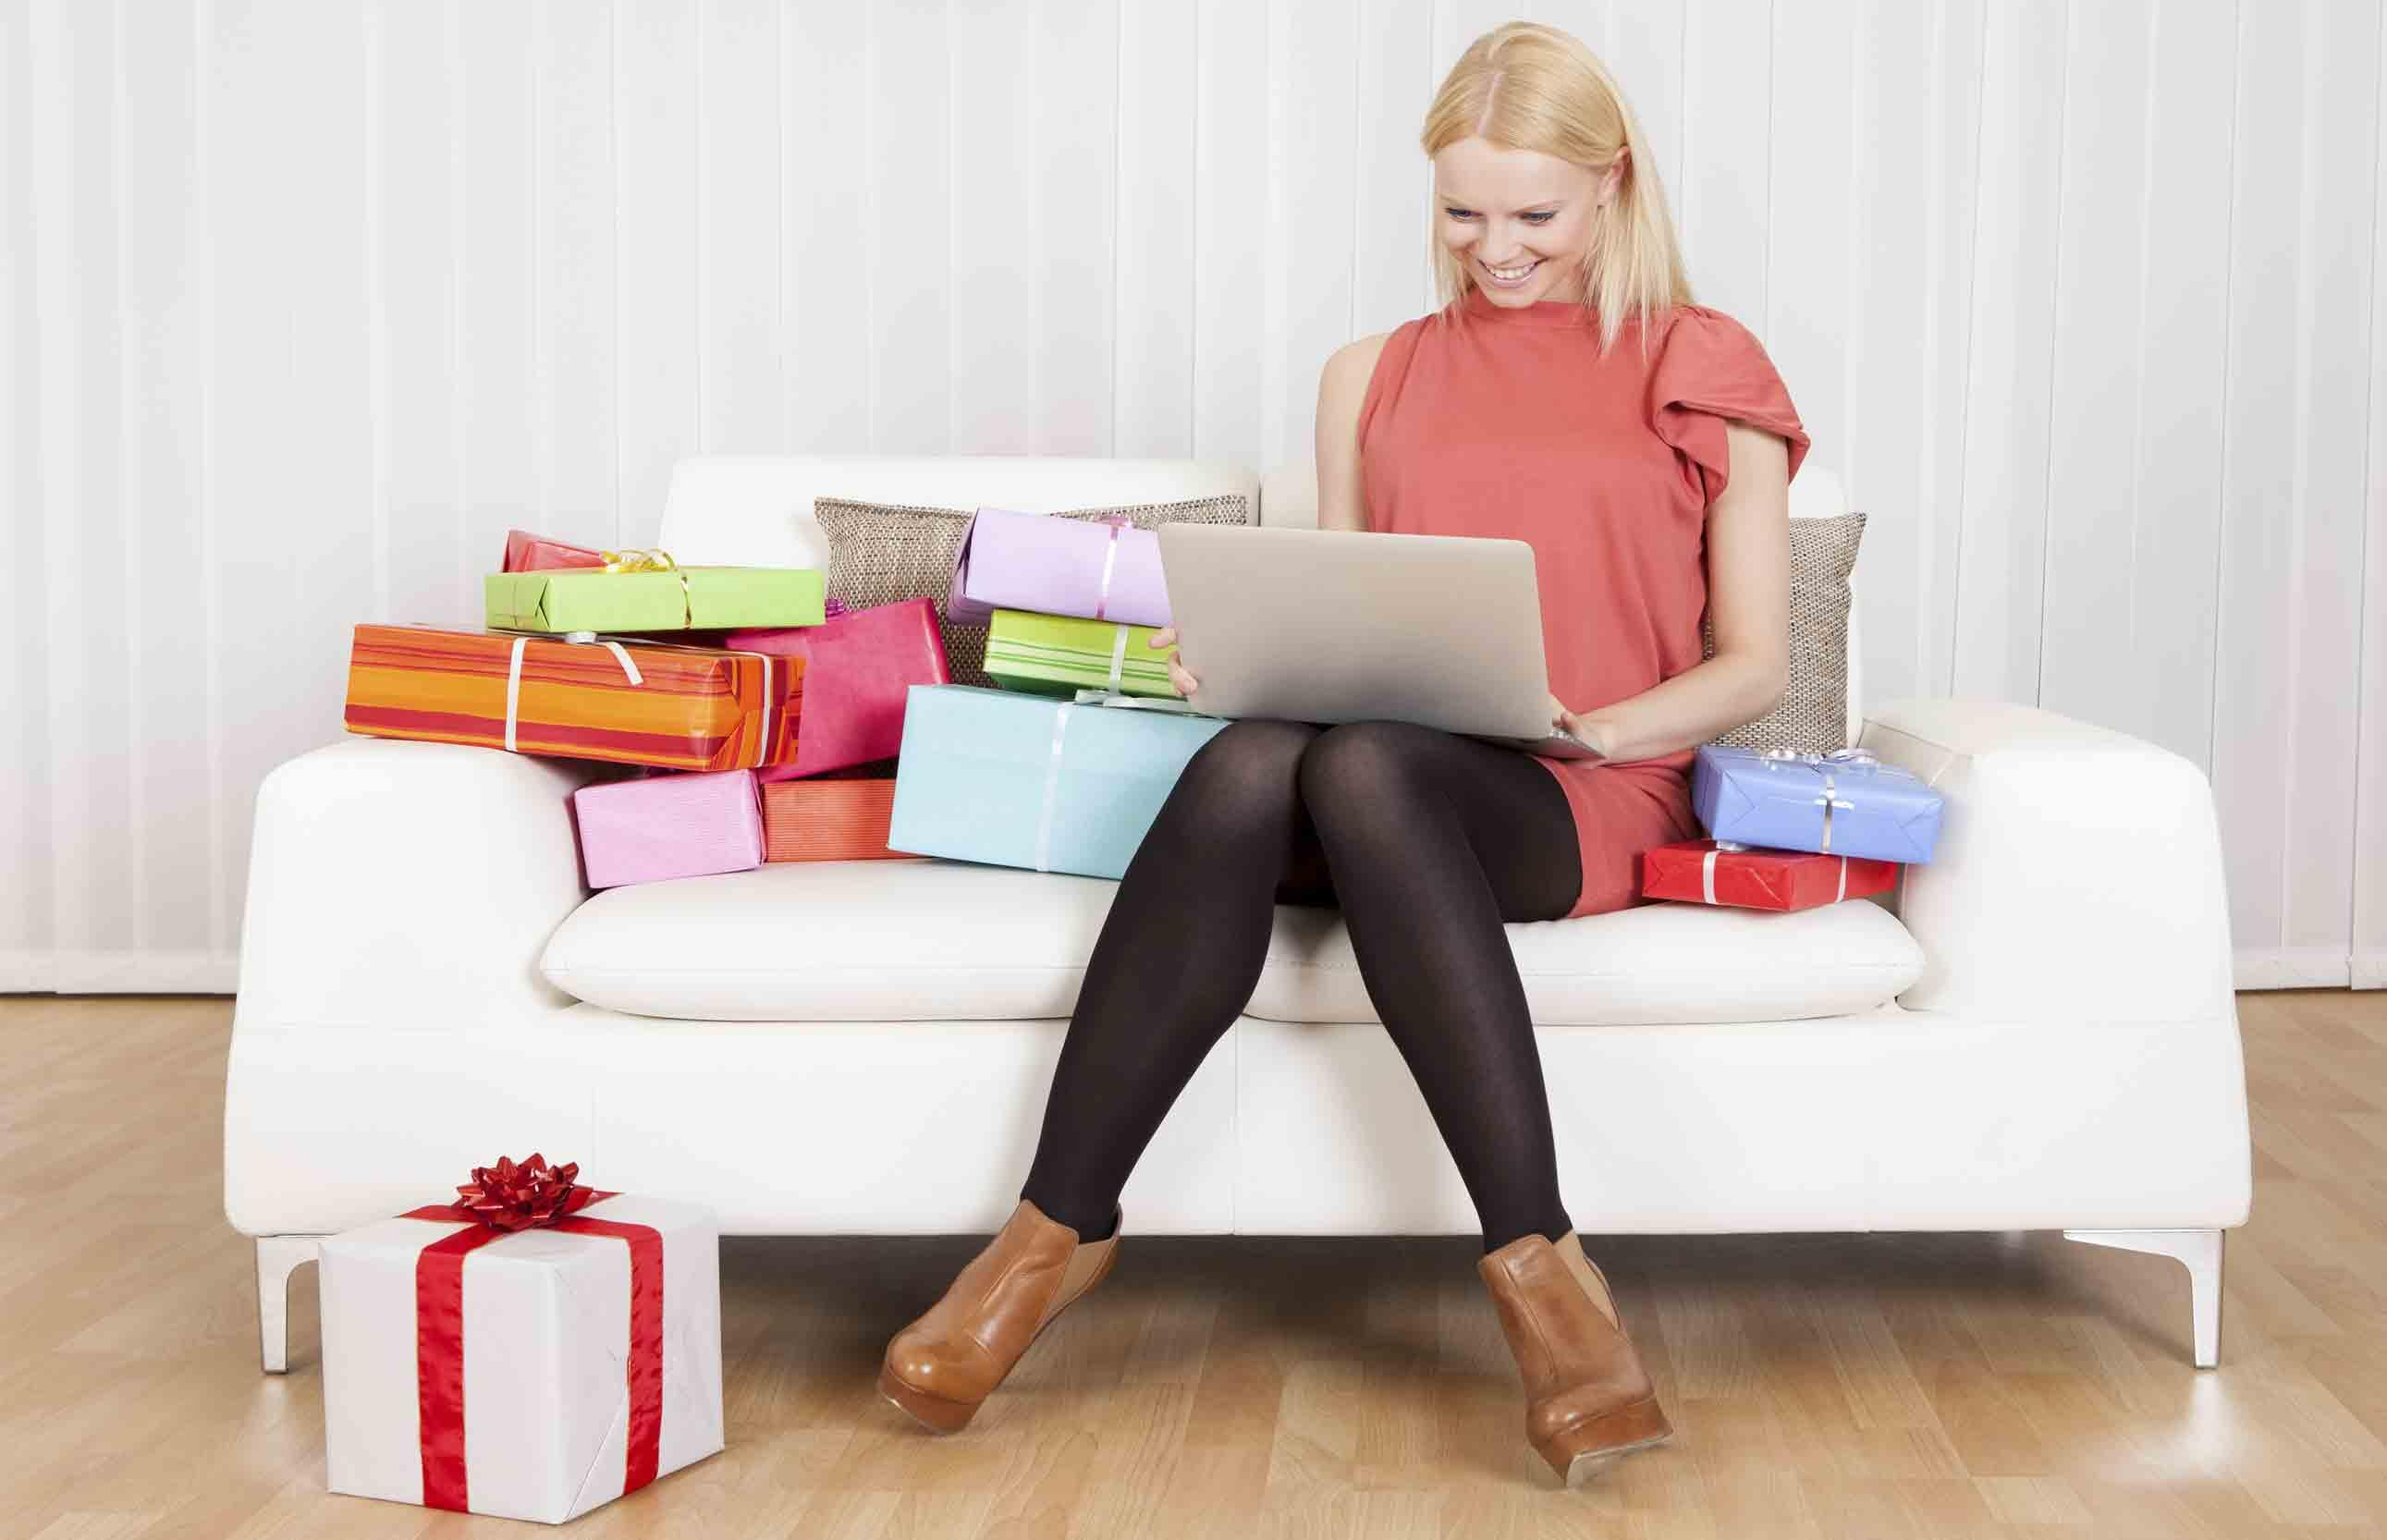 Should You Be Worried About Identity Theft on Cyber Monday?